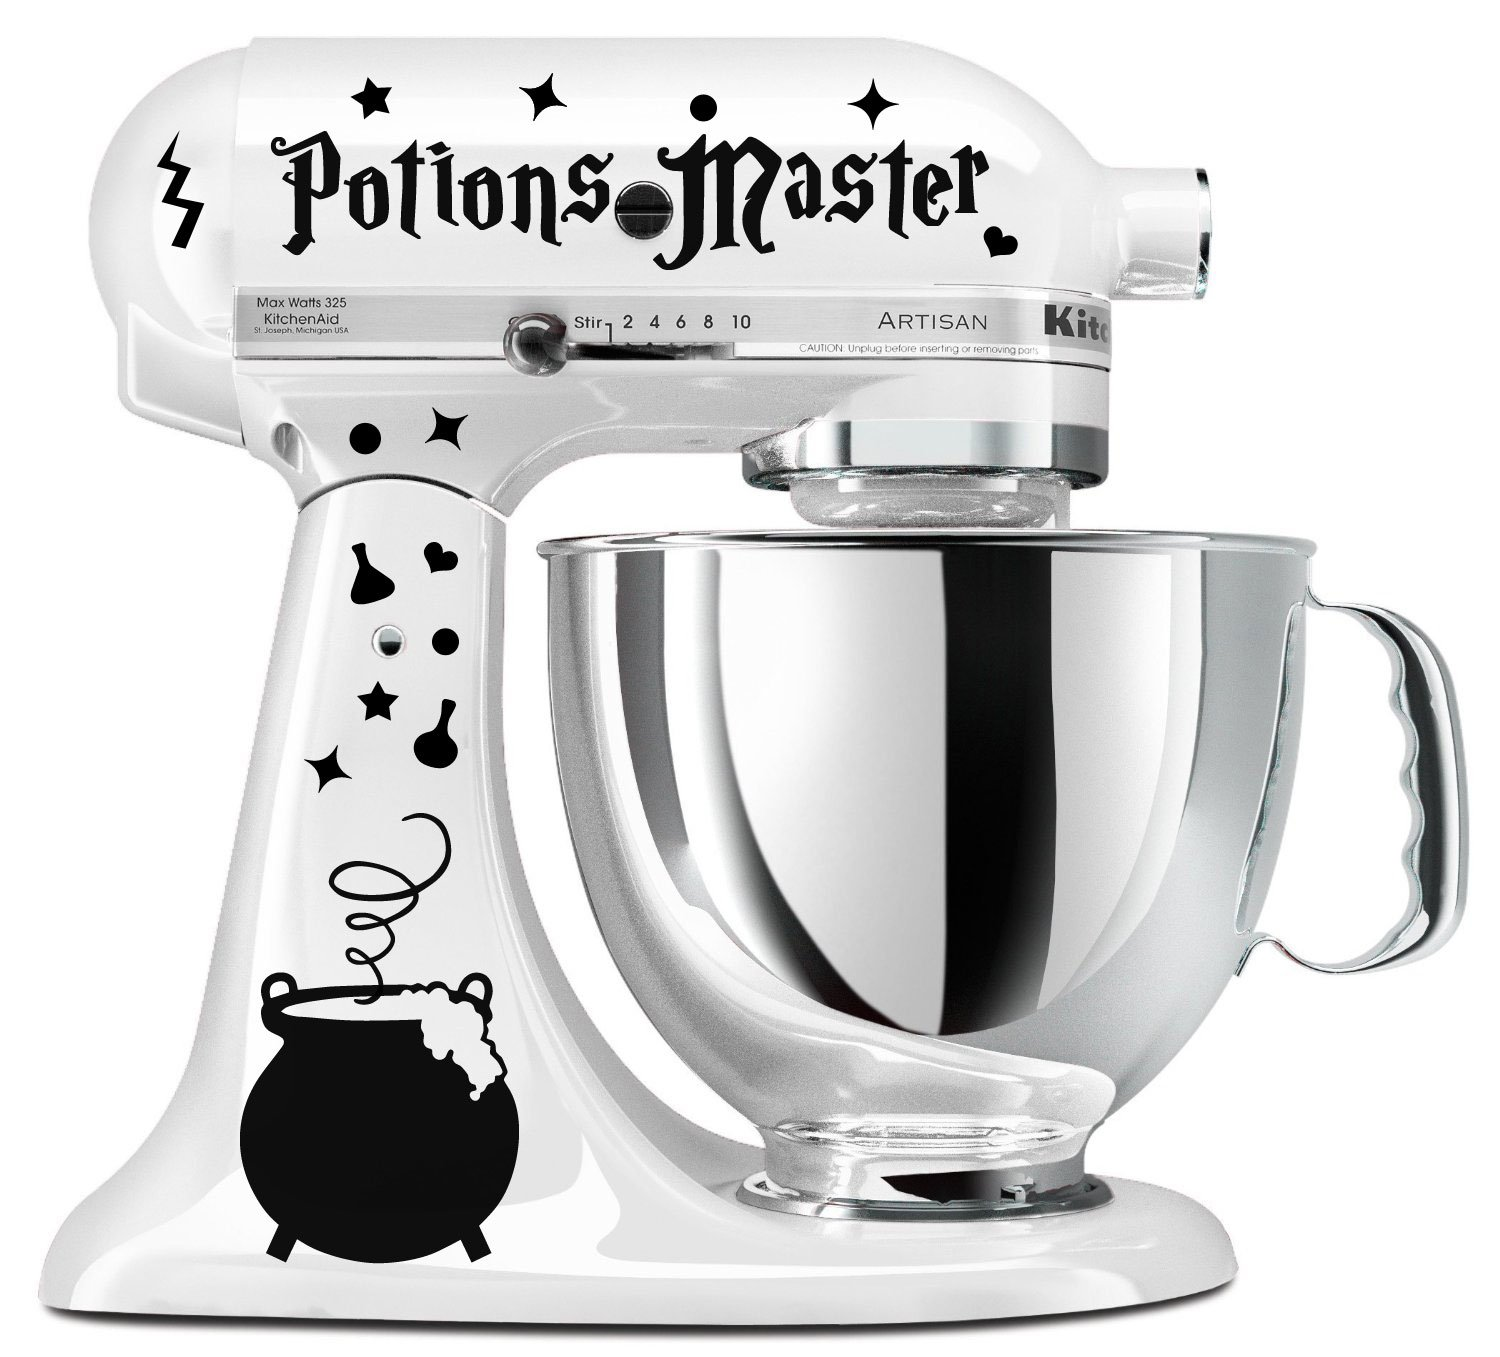 Potions Master Wizard Cauldron Black Vinyl Decal Set For Stand Mixer (Mixer Not Included)